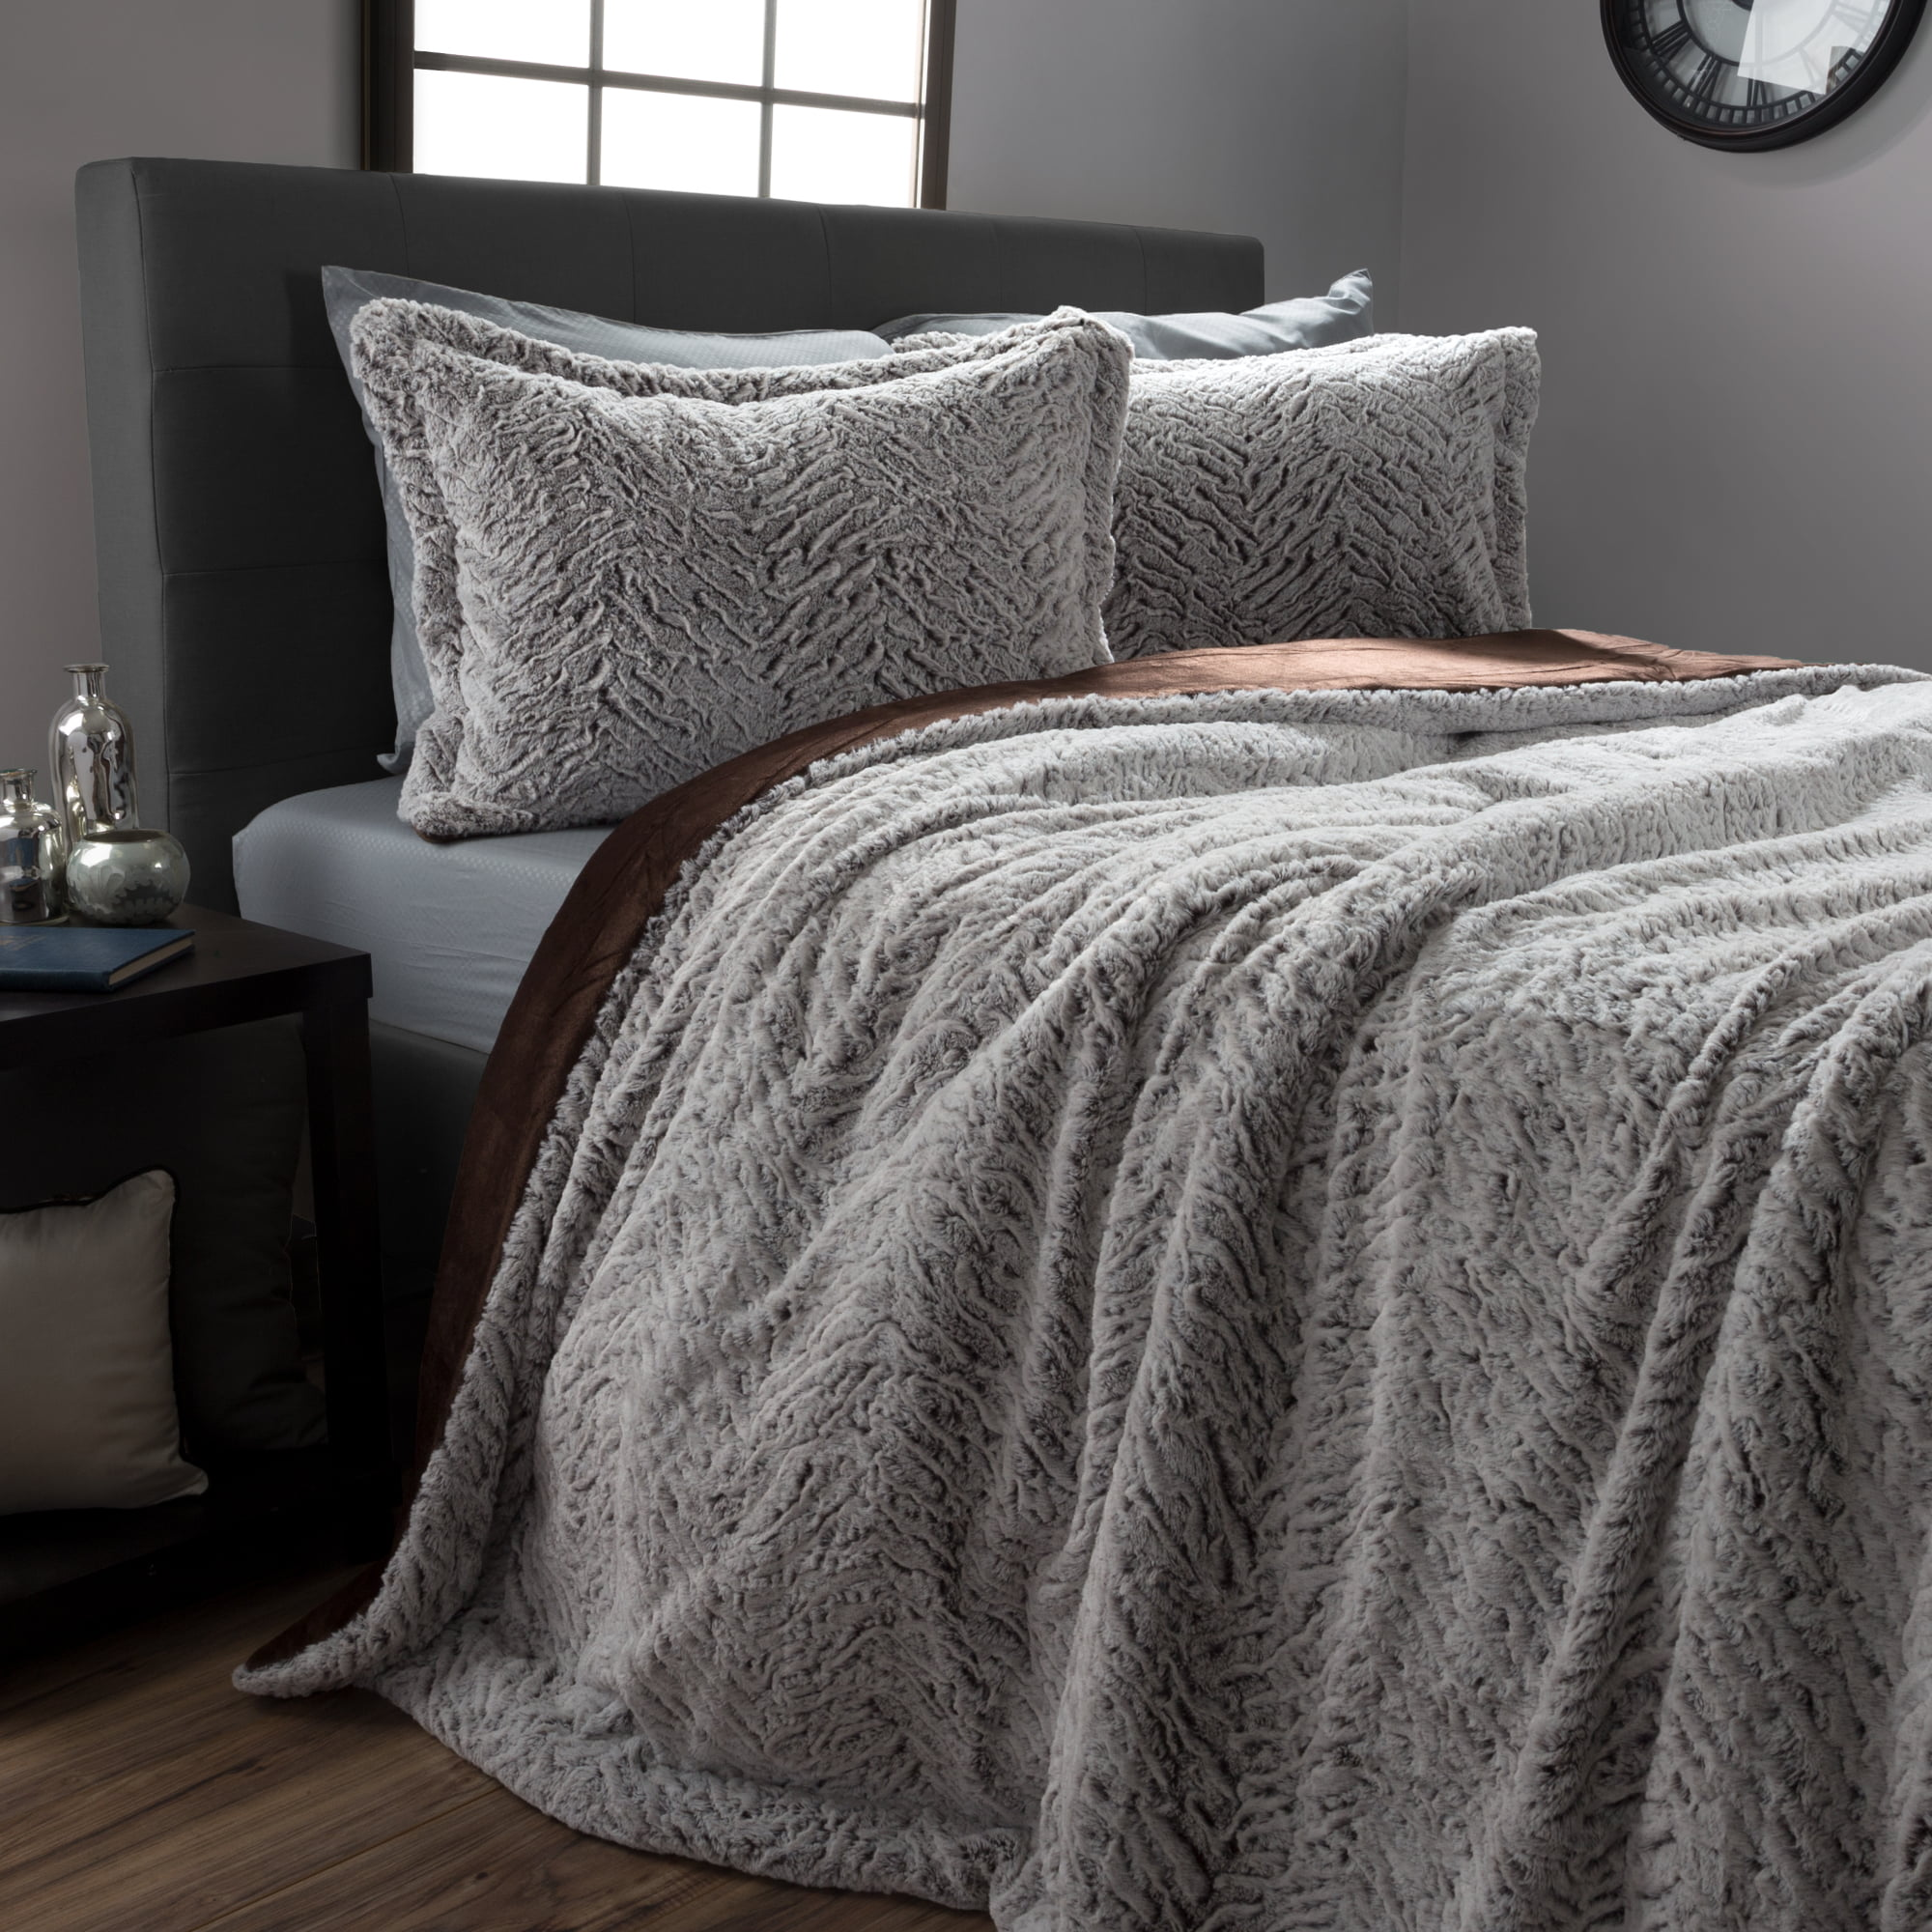 Faux Fur Comforter Set, 3 Piece King Comforter and Sham Set With